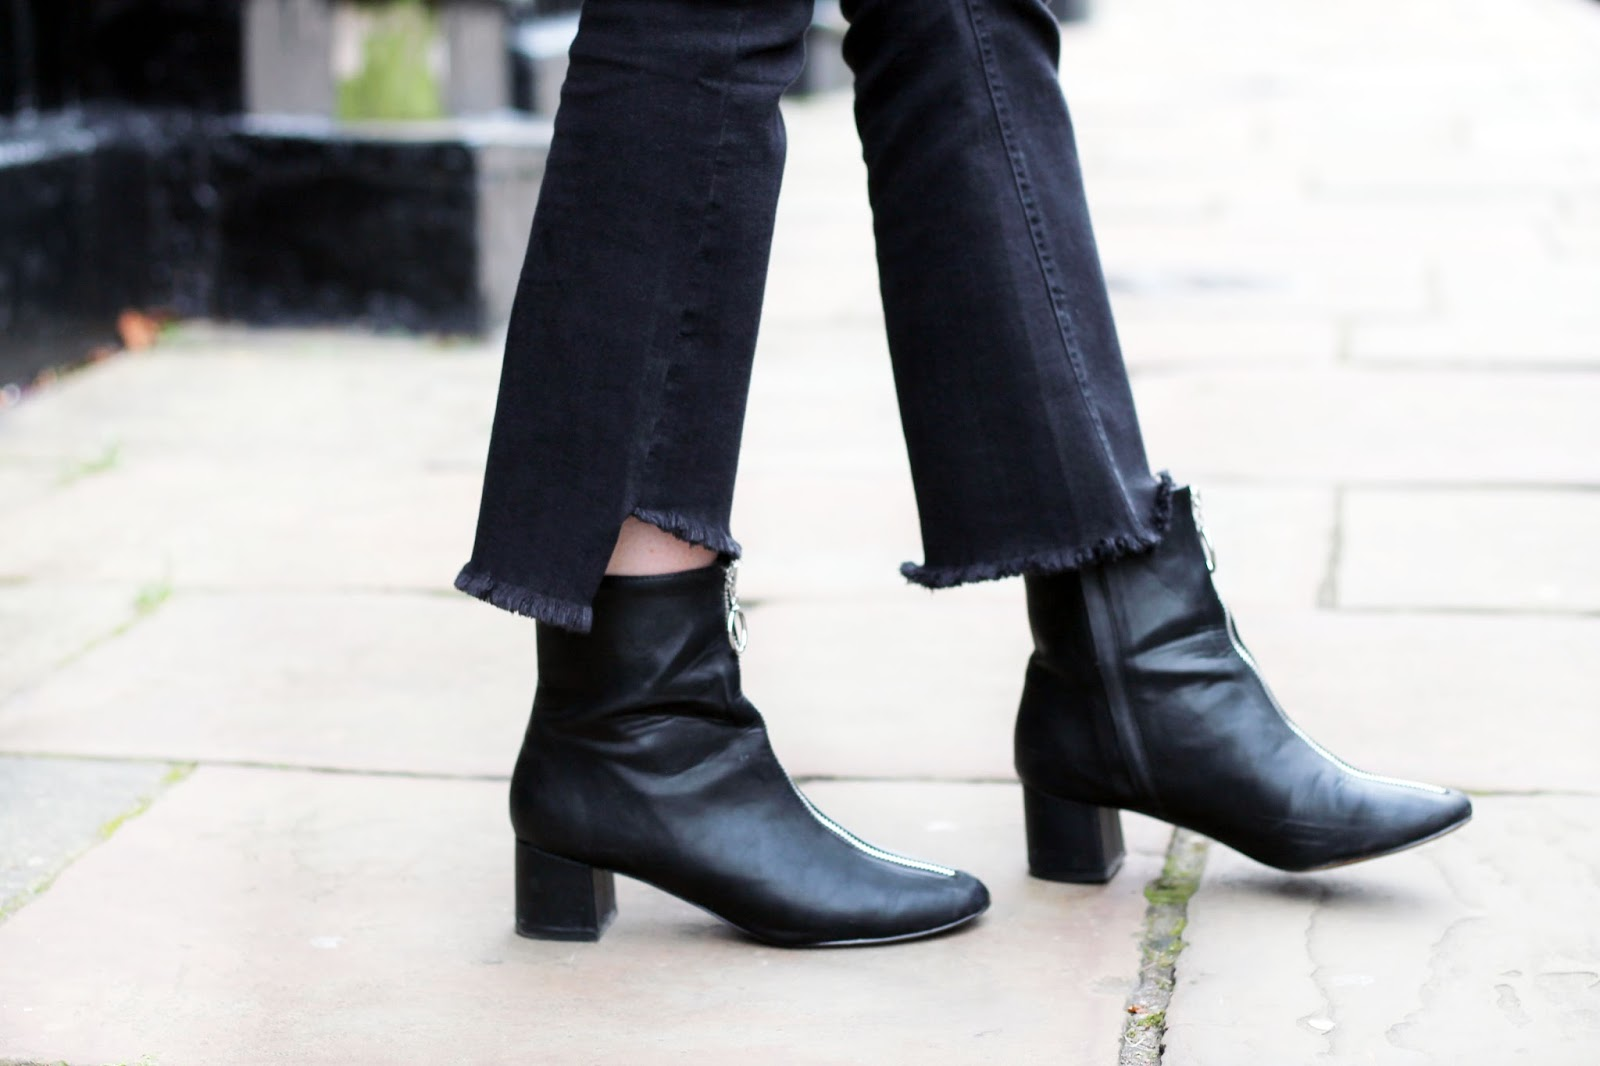 black crop kick flare jeans with distressed hem and black ankle boots